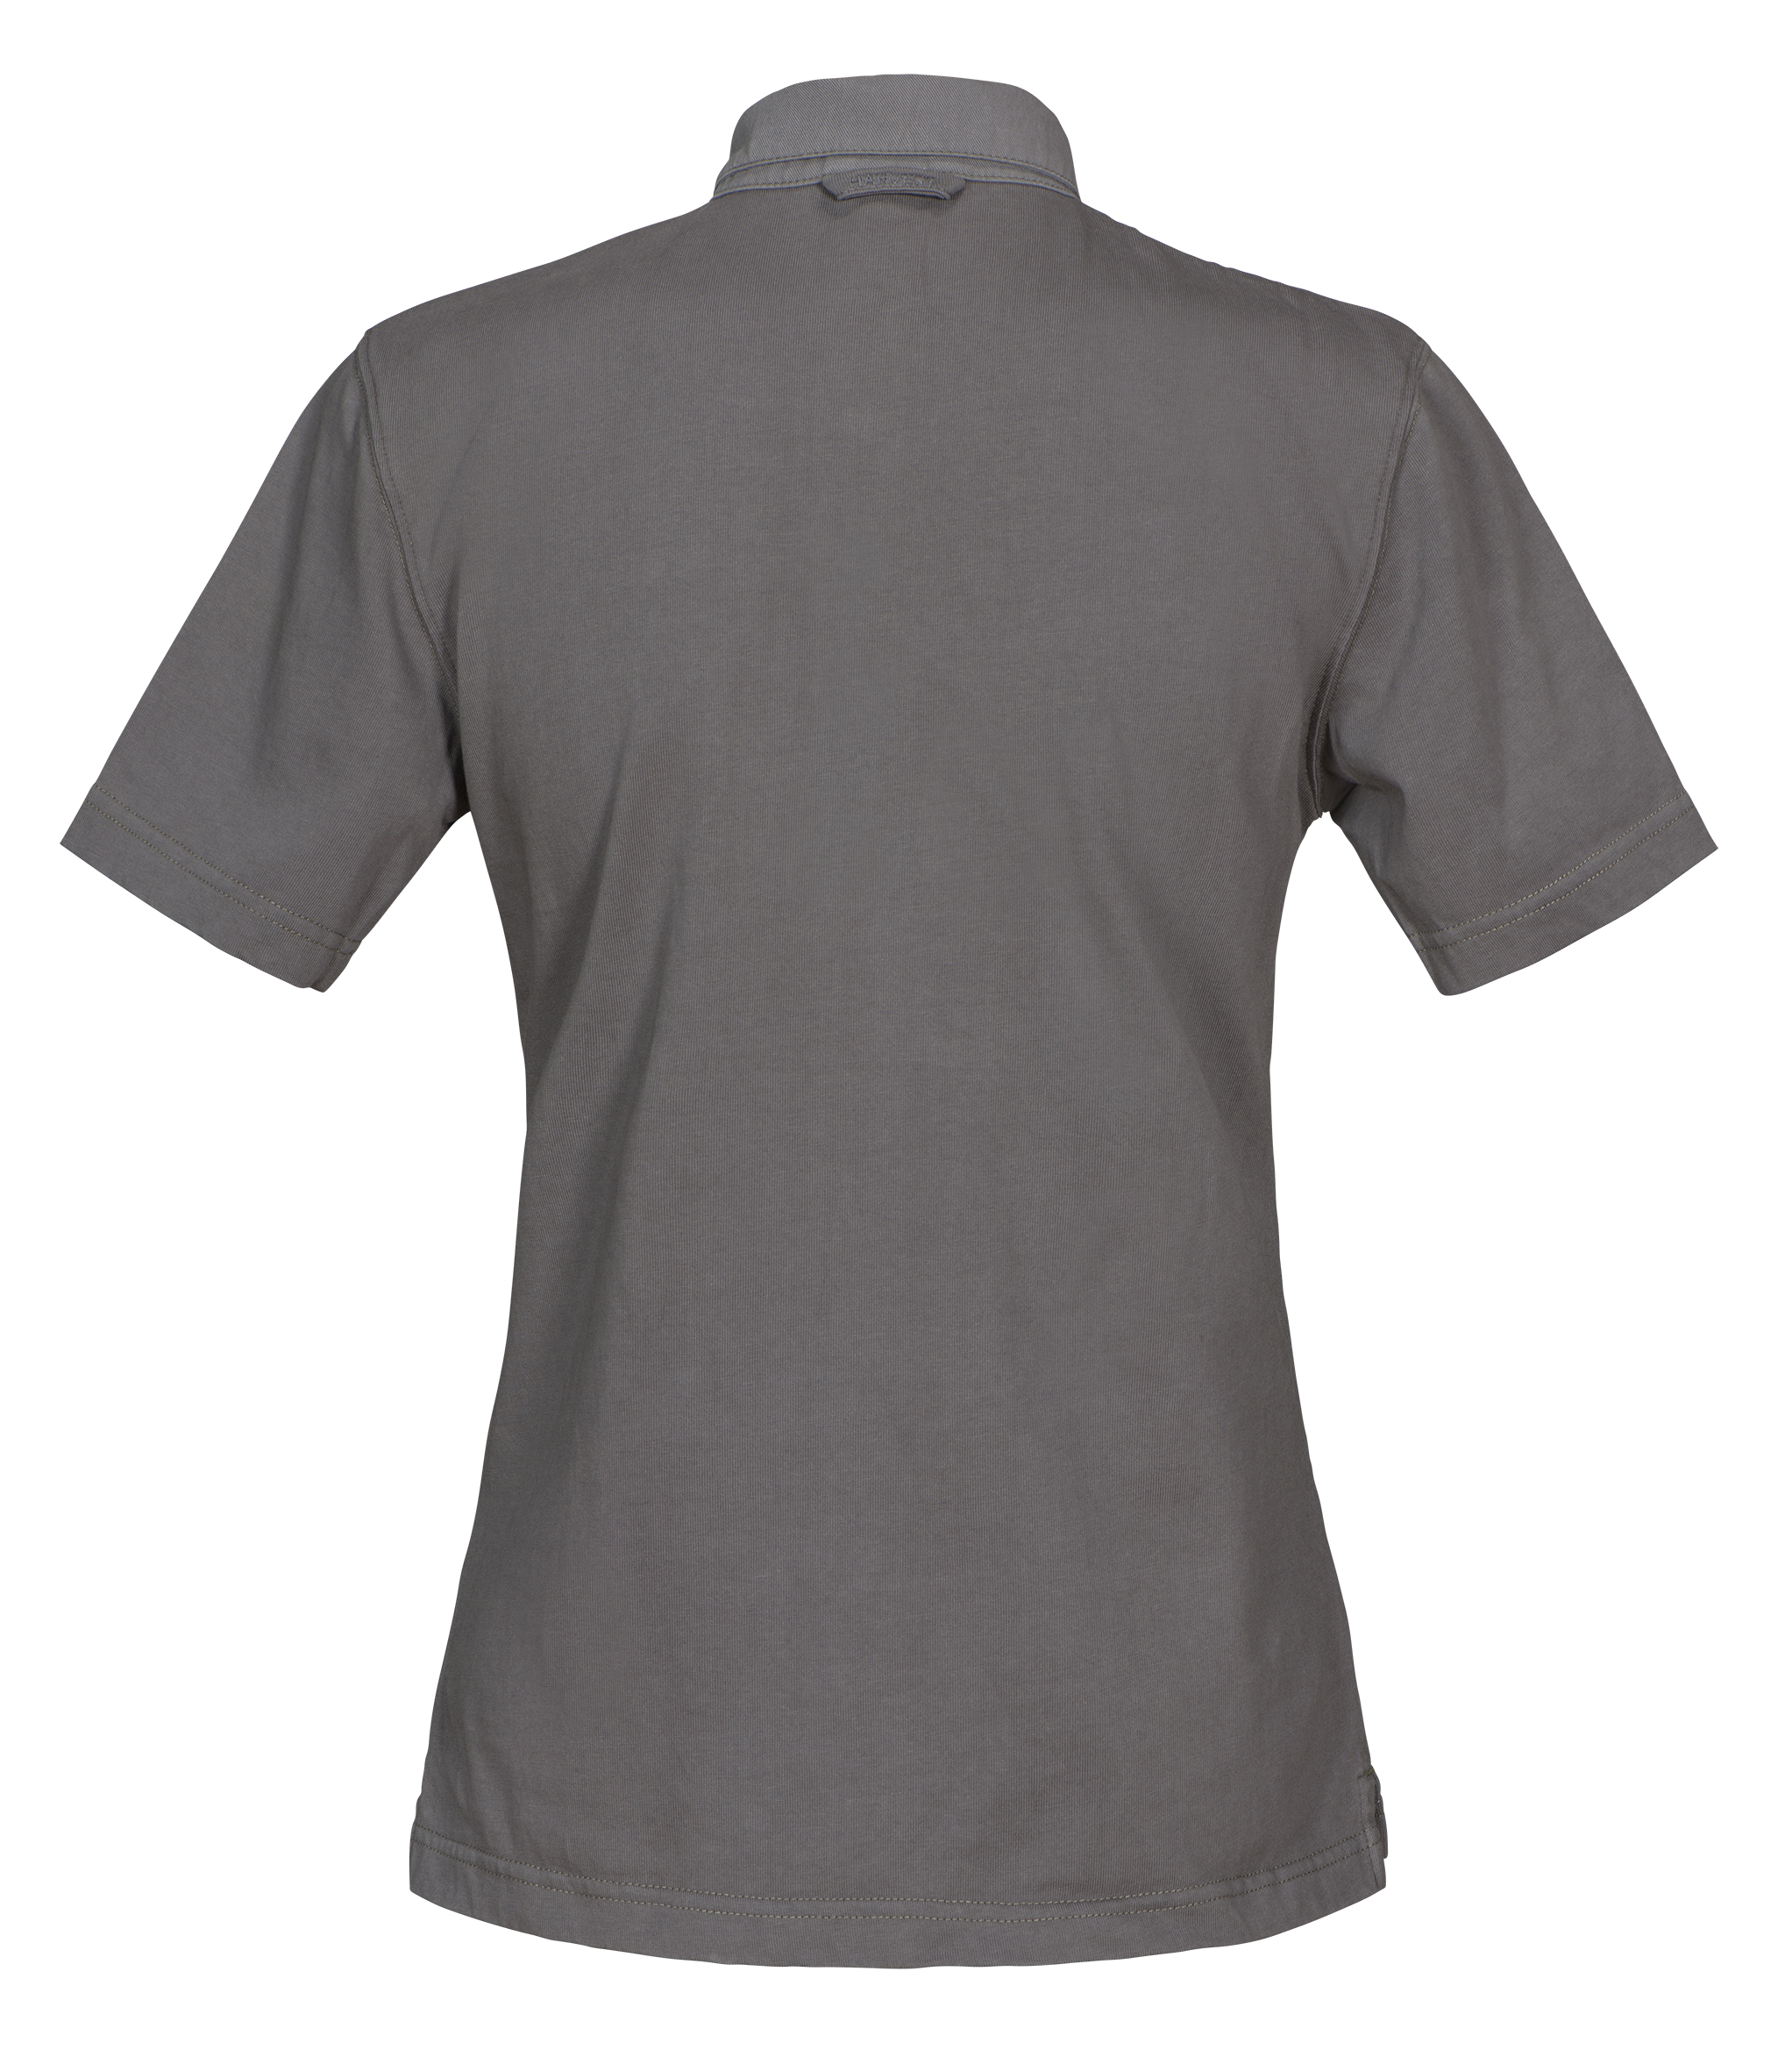 Amherst Ladies Polo in 955 Faded Grey (Back View)